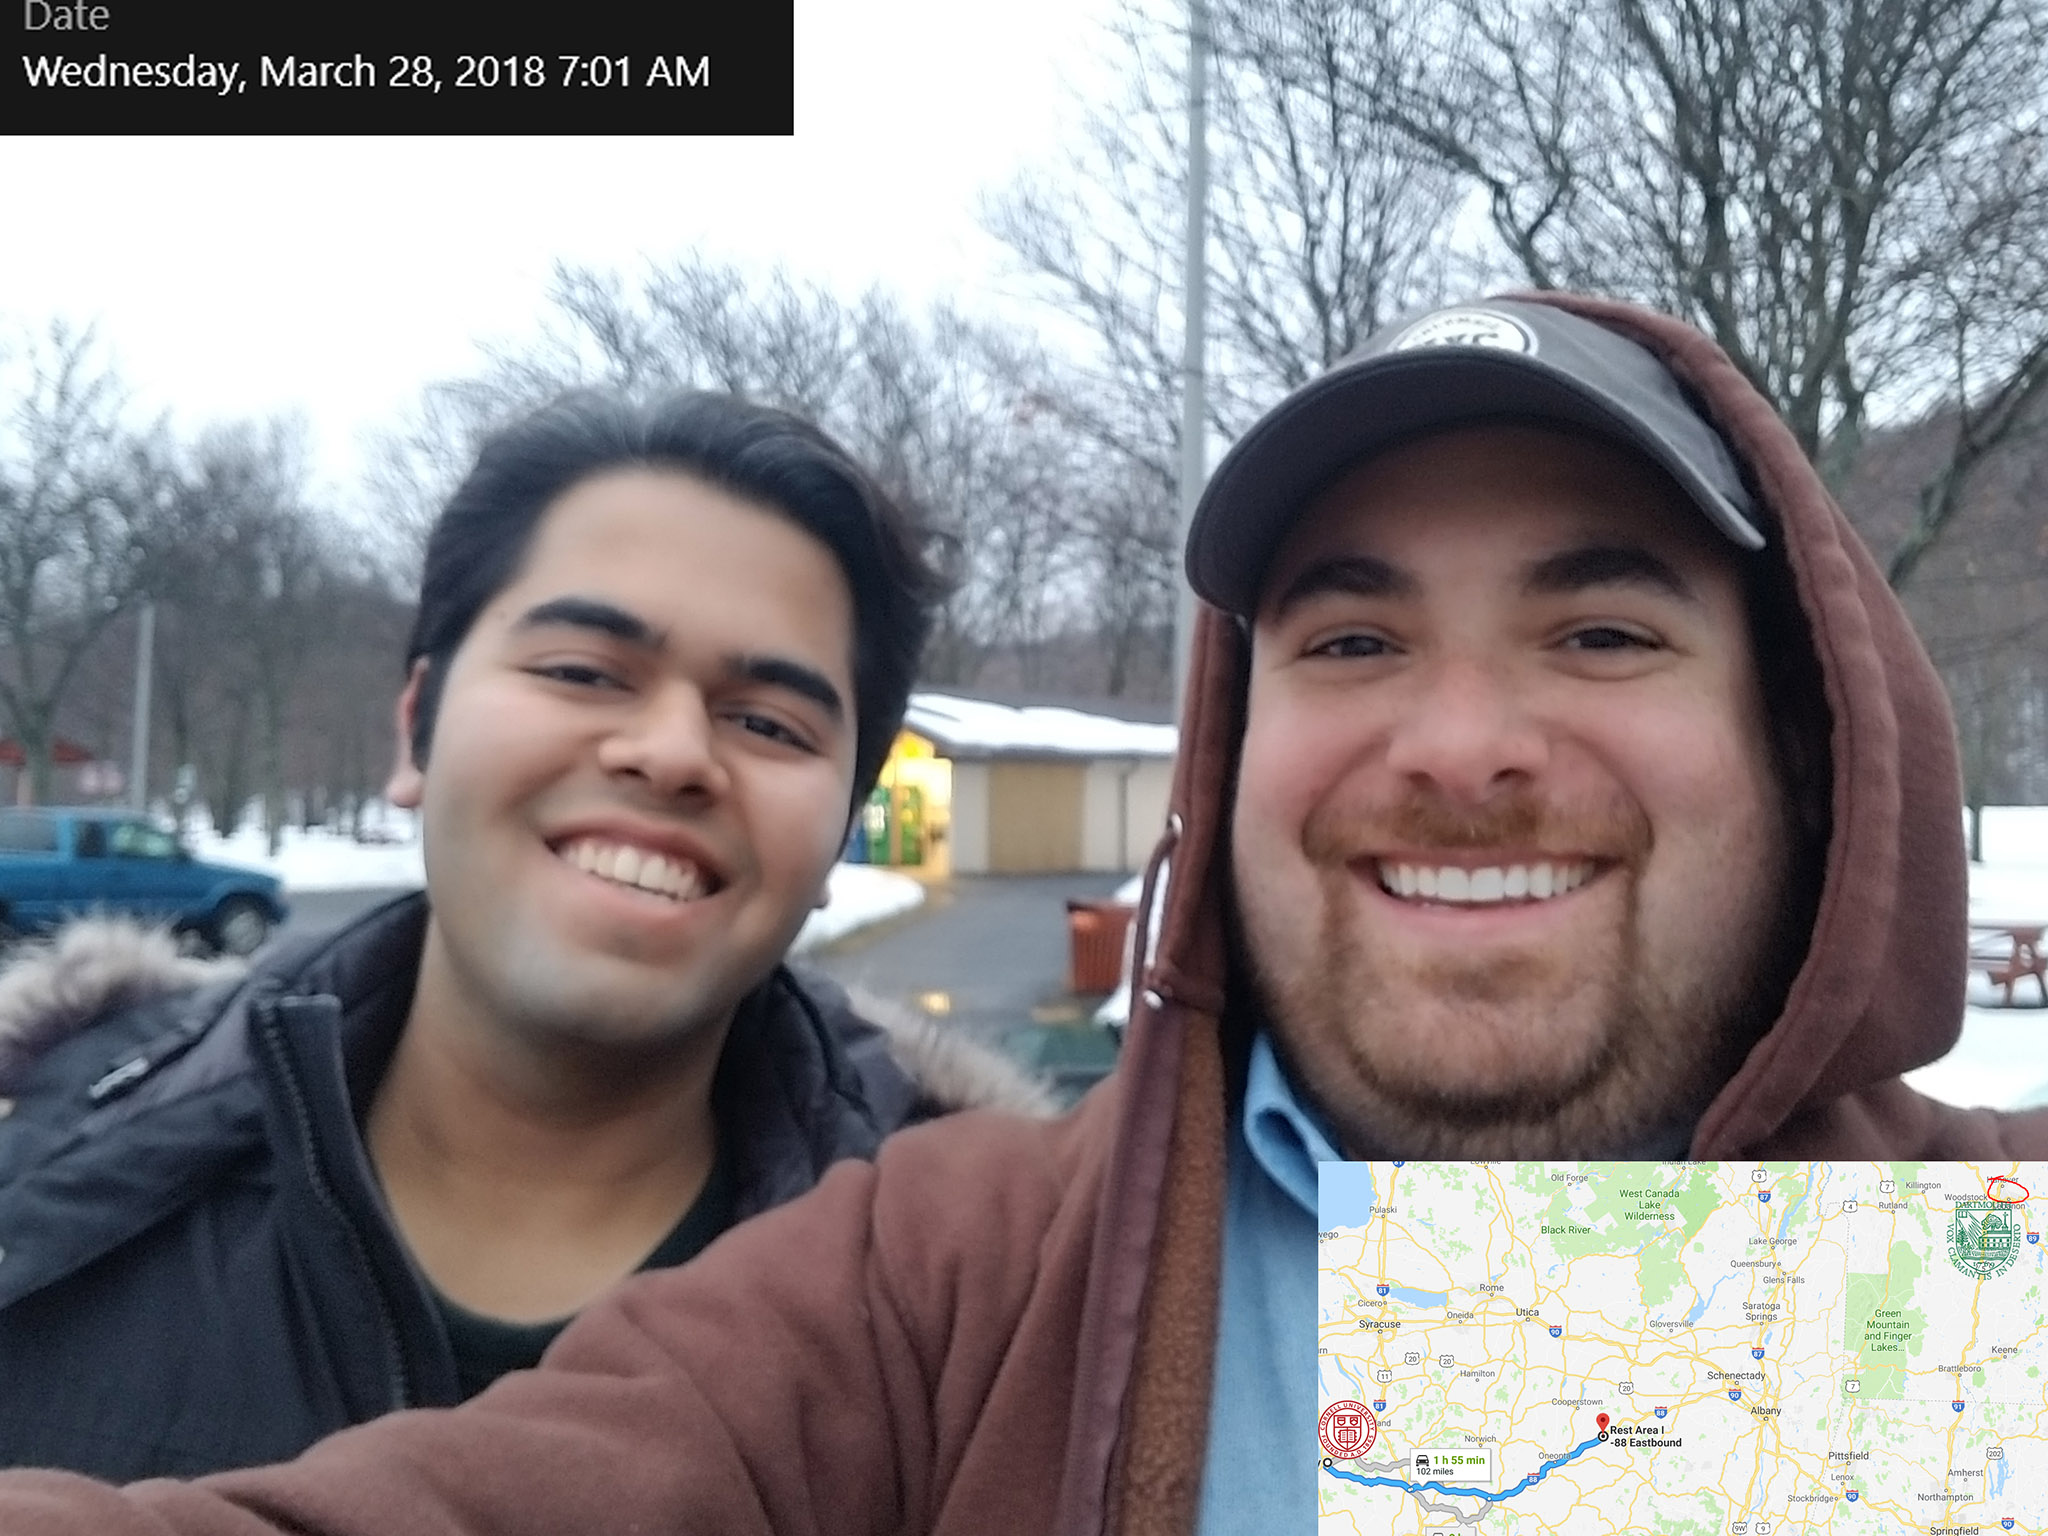 The first leg of the trip was the longest. Ben and Mohak took their first break after two hours of driving.